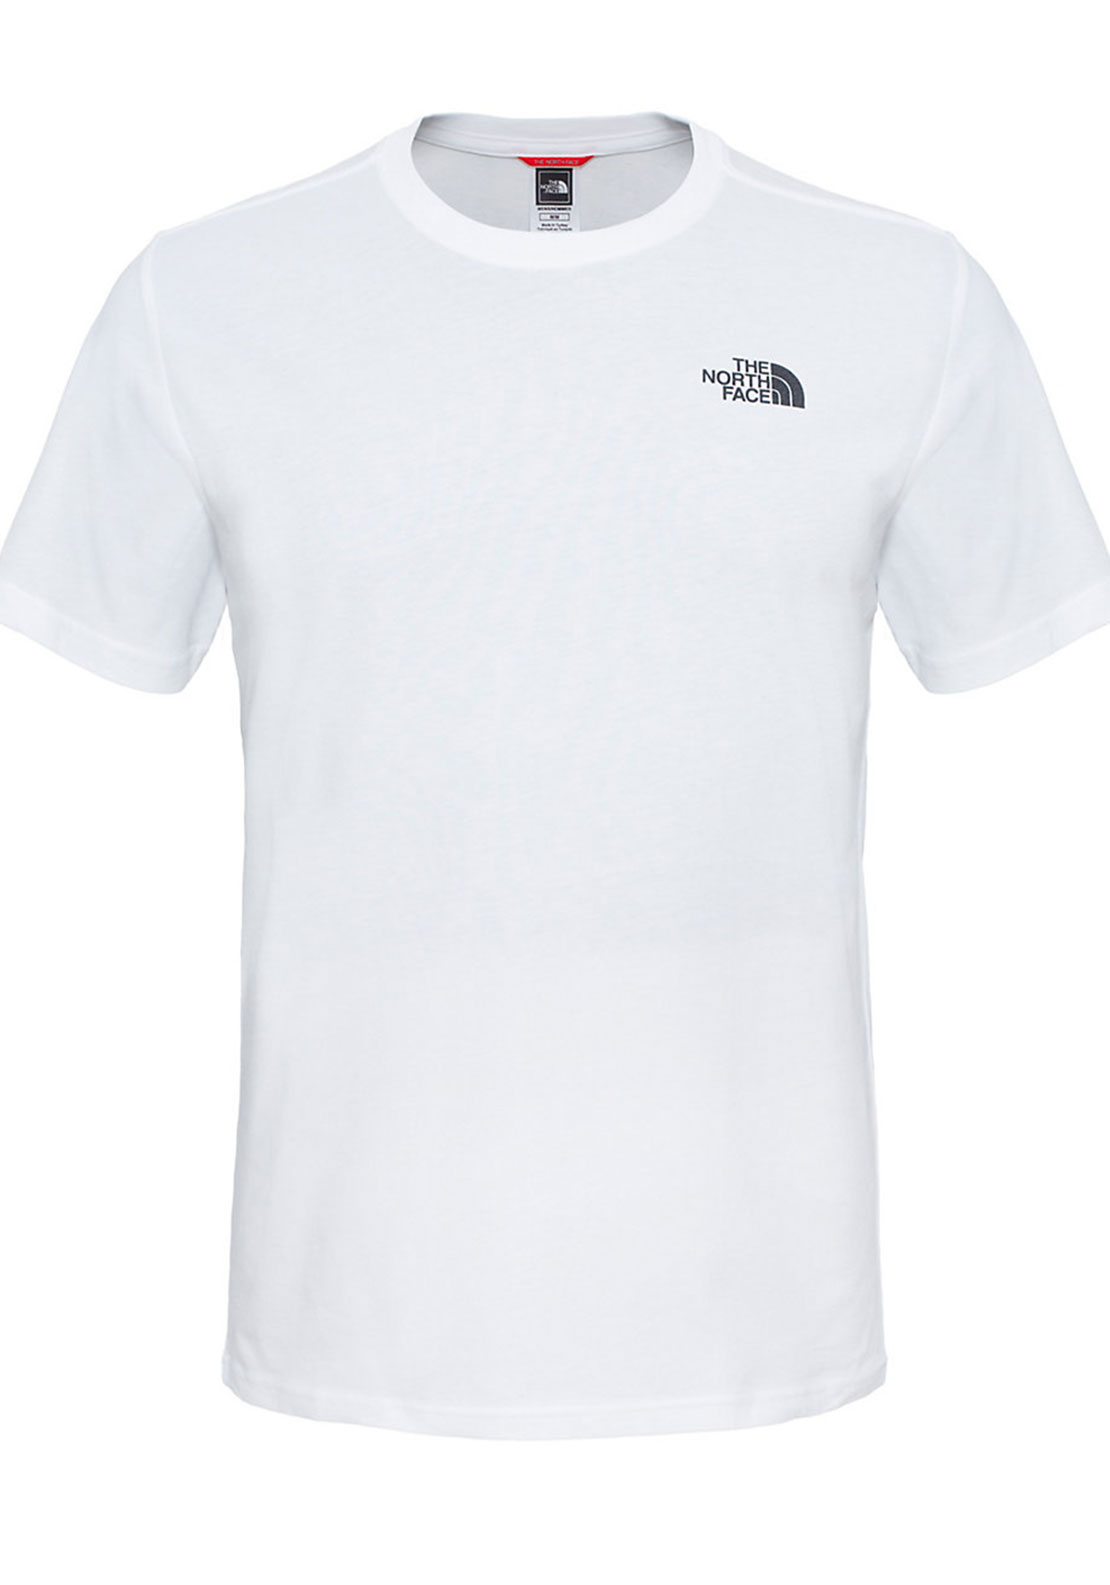 The North Face Mens Red Box Tee, White